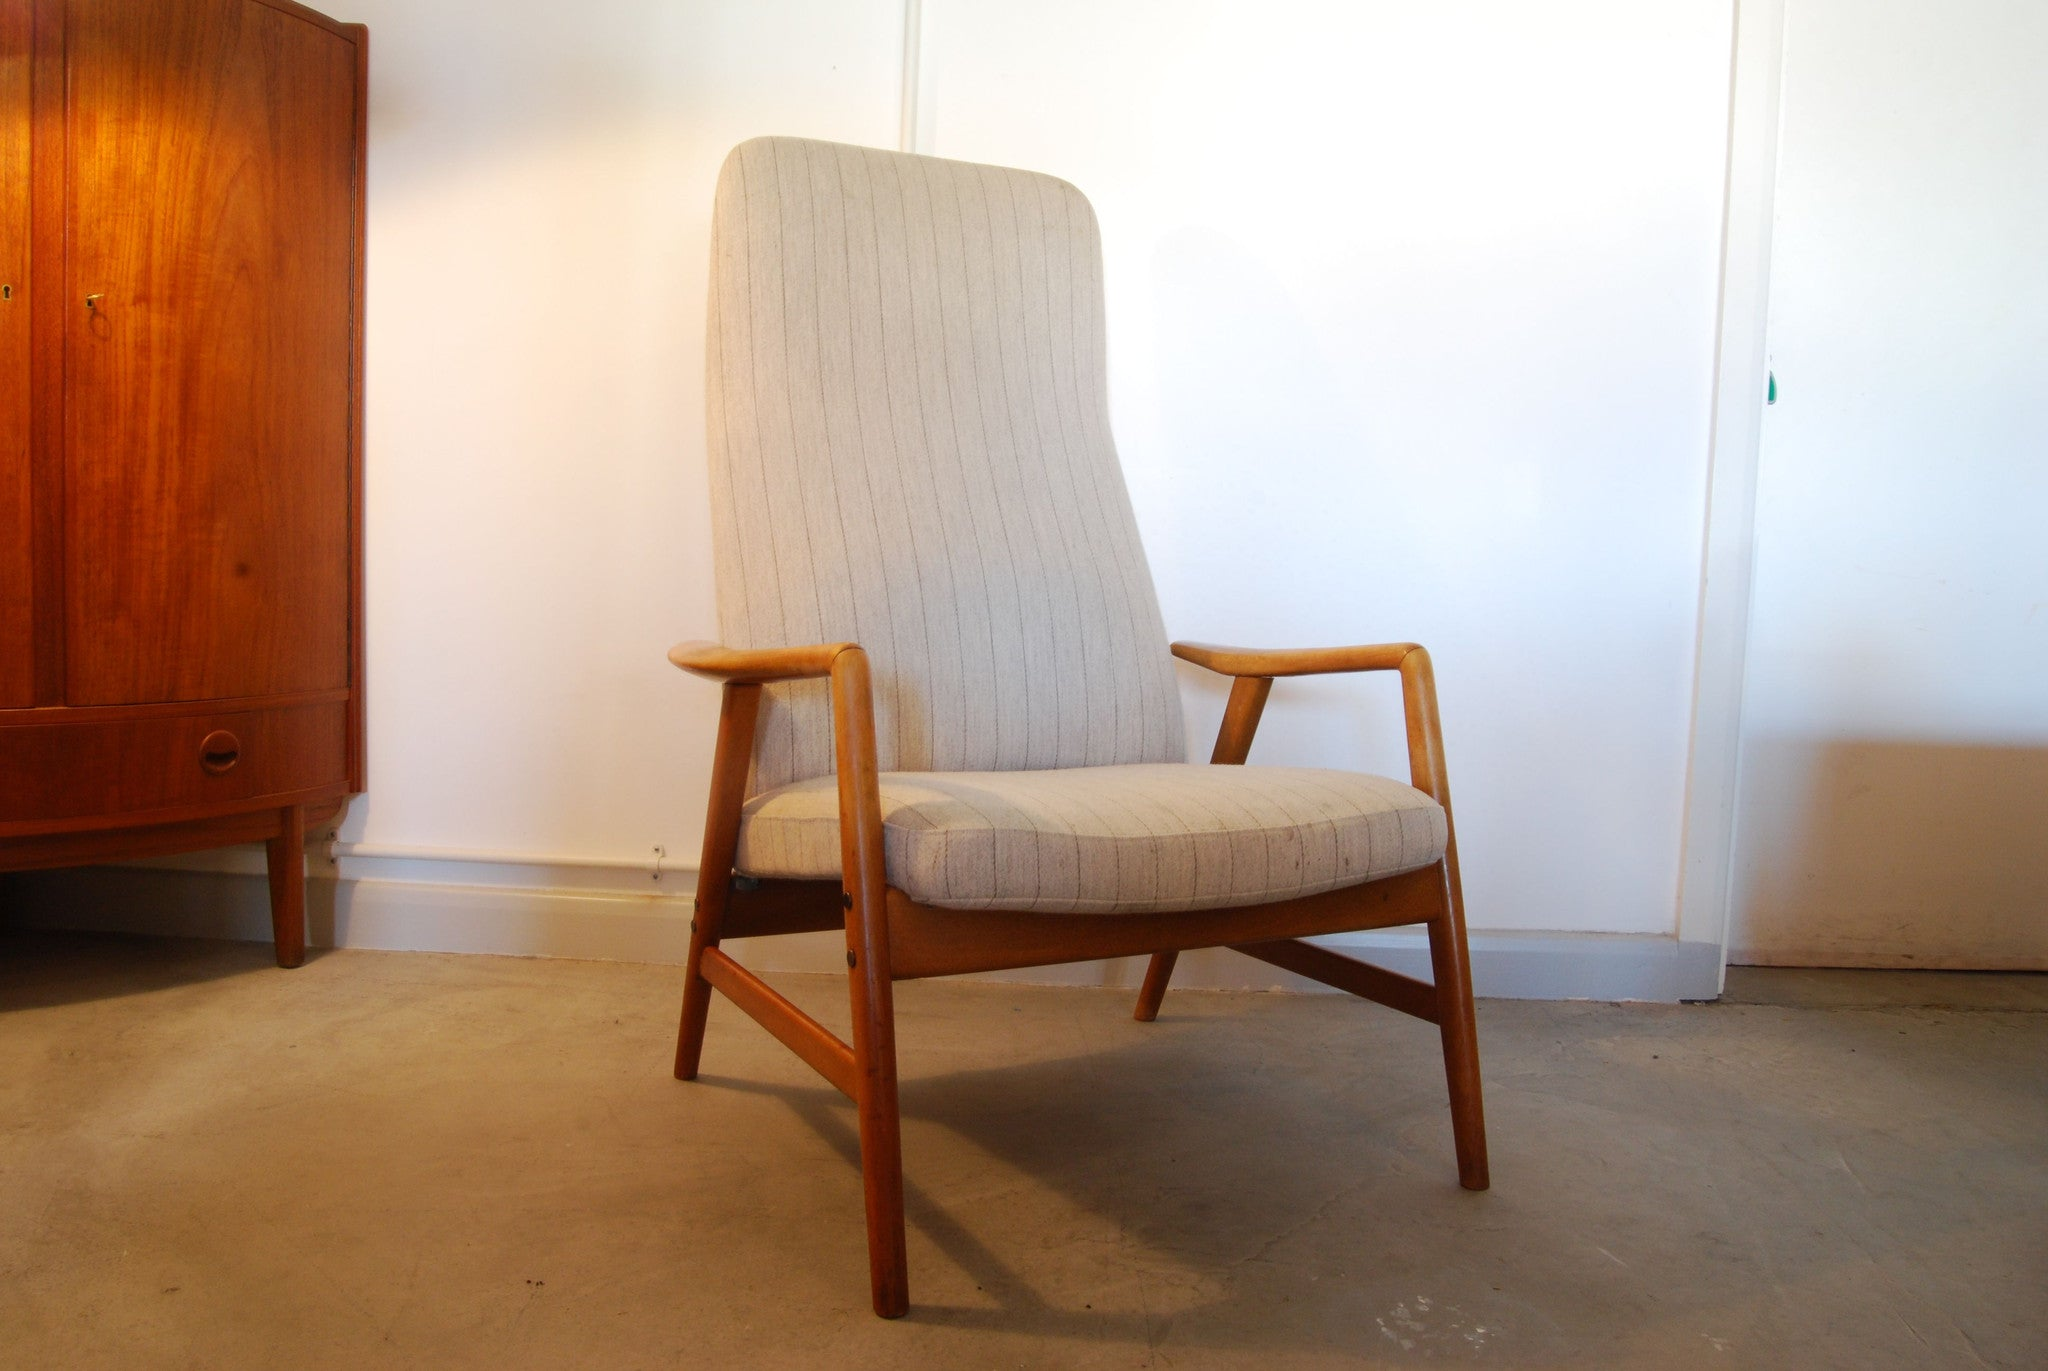 Kontour chair by Alf Svensson